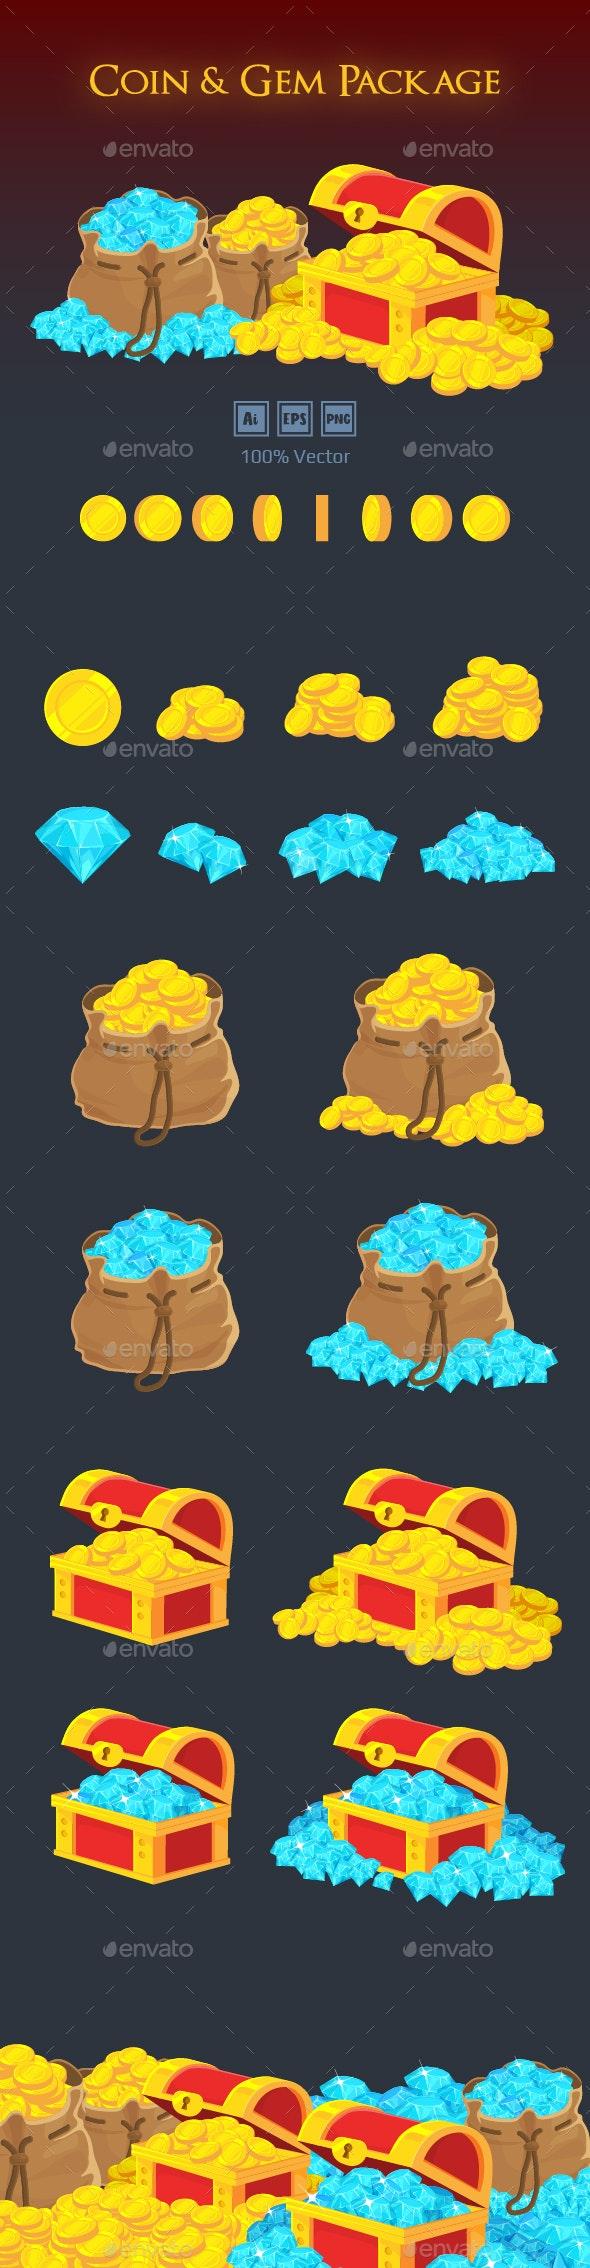 Coin & Gem Package - Miscellaneous Game Assets